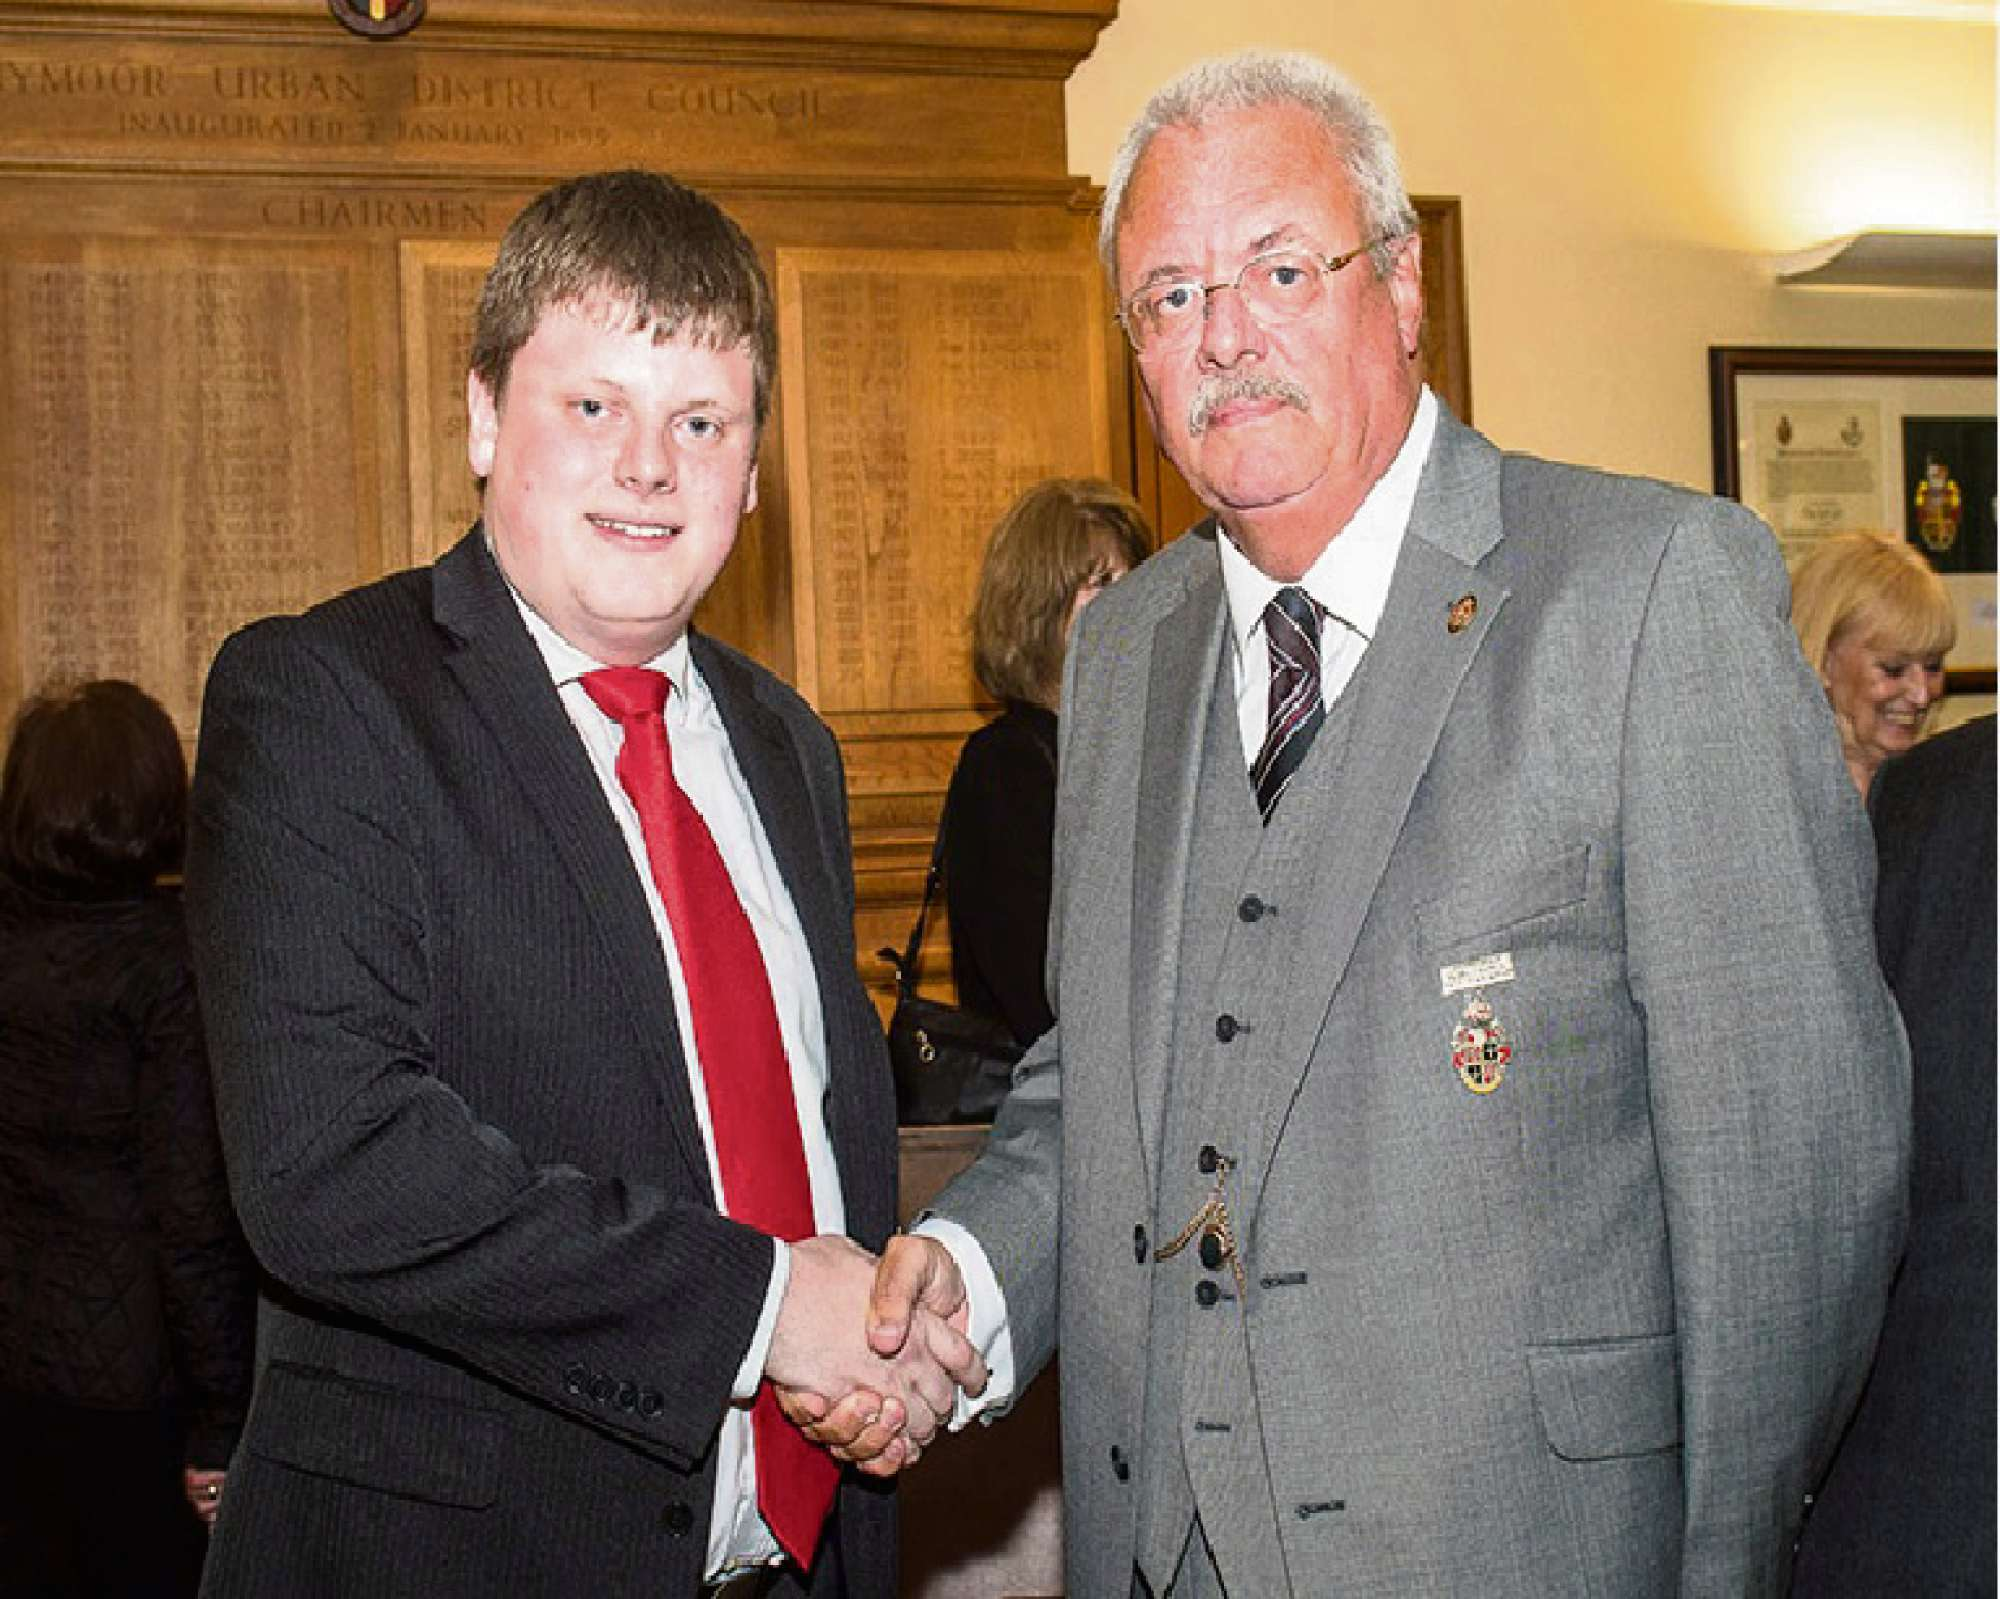 24-year-old appointed leader of town council